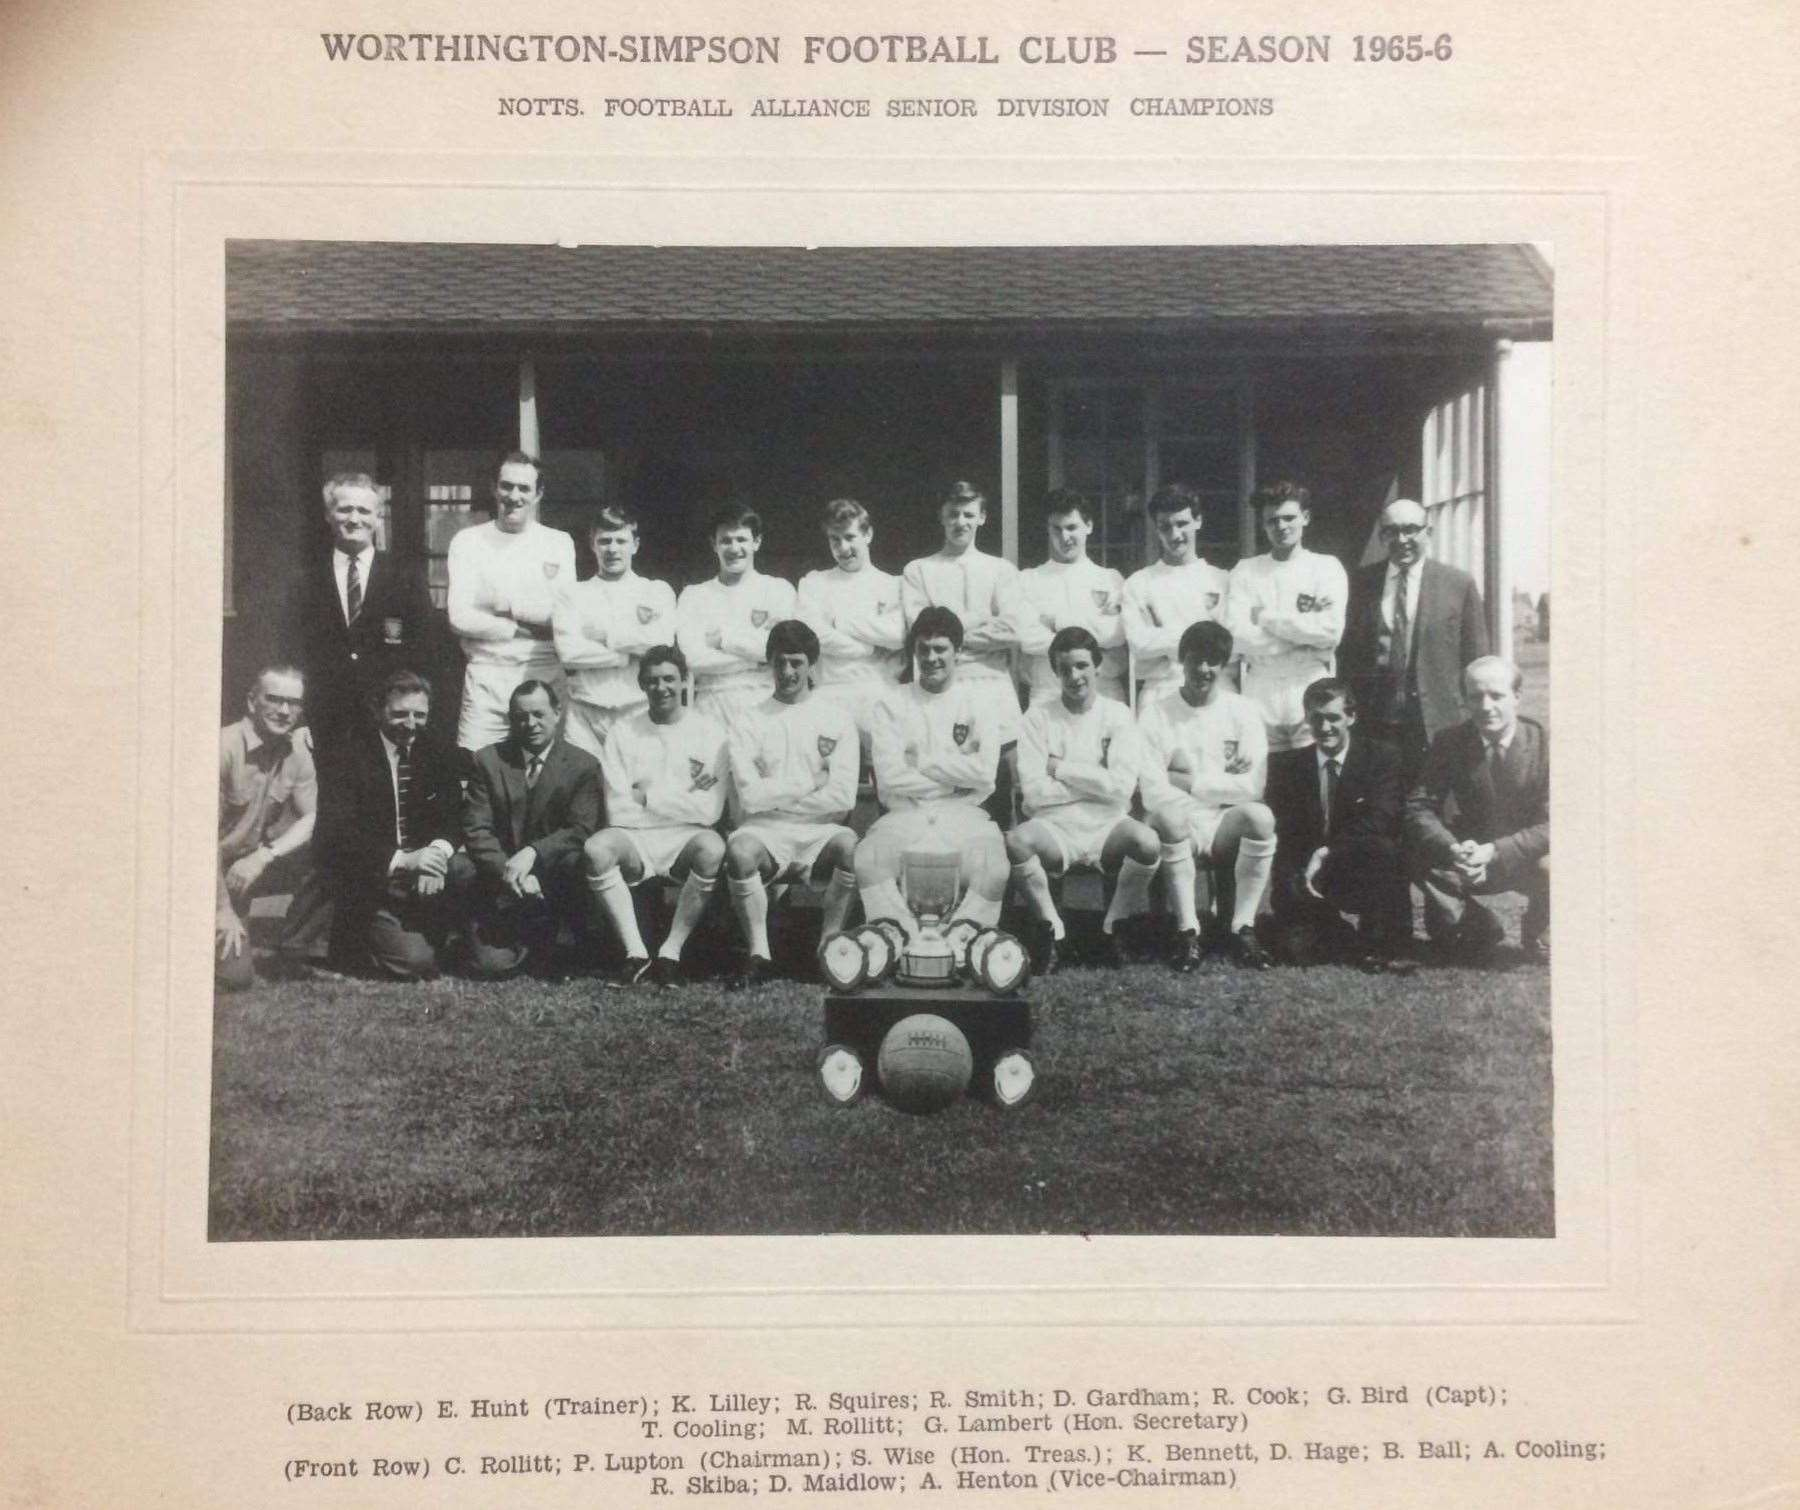 Worthington Simpson Football Club, Notts Football Alliance Senior Division Champions — Season 1965/66. Alvyn Cooling is pictured on the front row, fourth from the left.